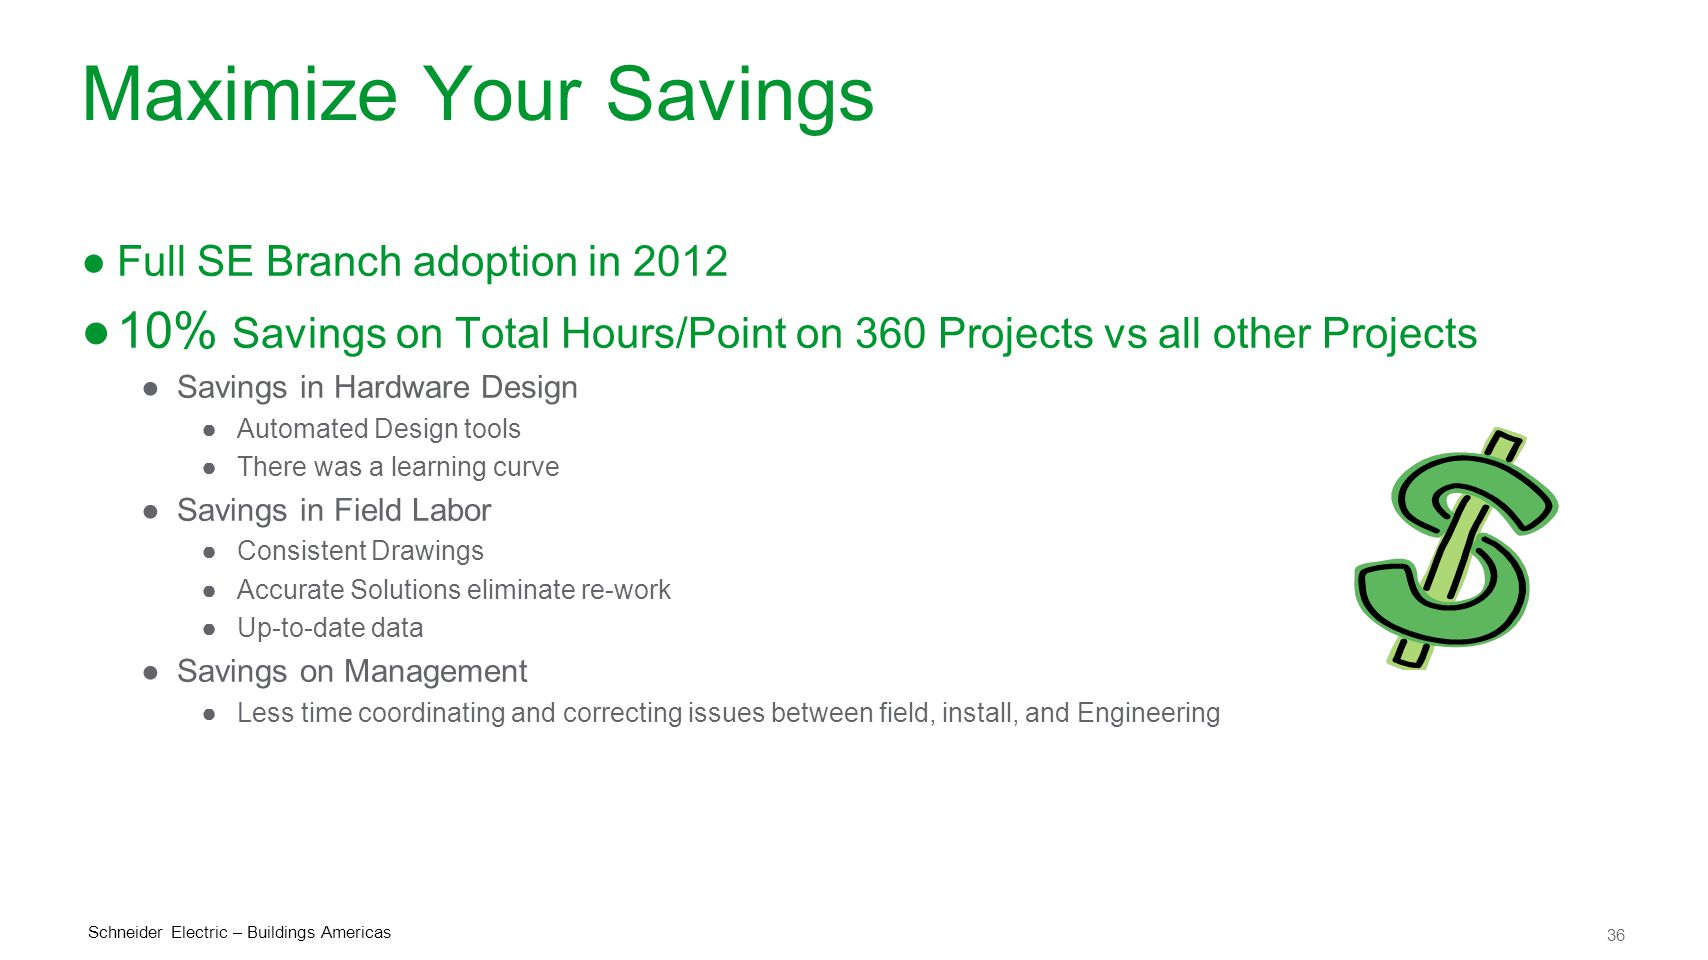 36 Schneider Electric – Buildings Americas Maximize Your Savings ●Full SE Branch adoption in 2012 ●10% Savings on Total Hours/Point on 360 Projects vs